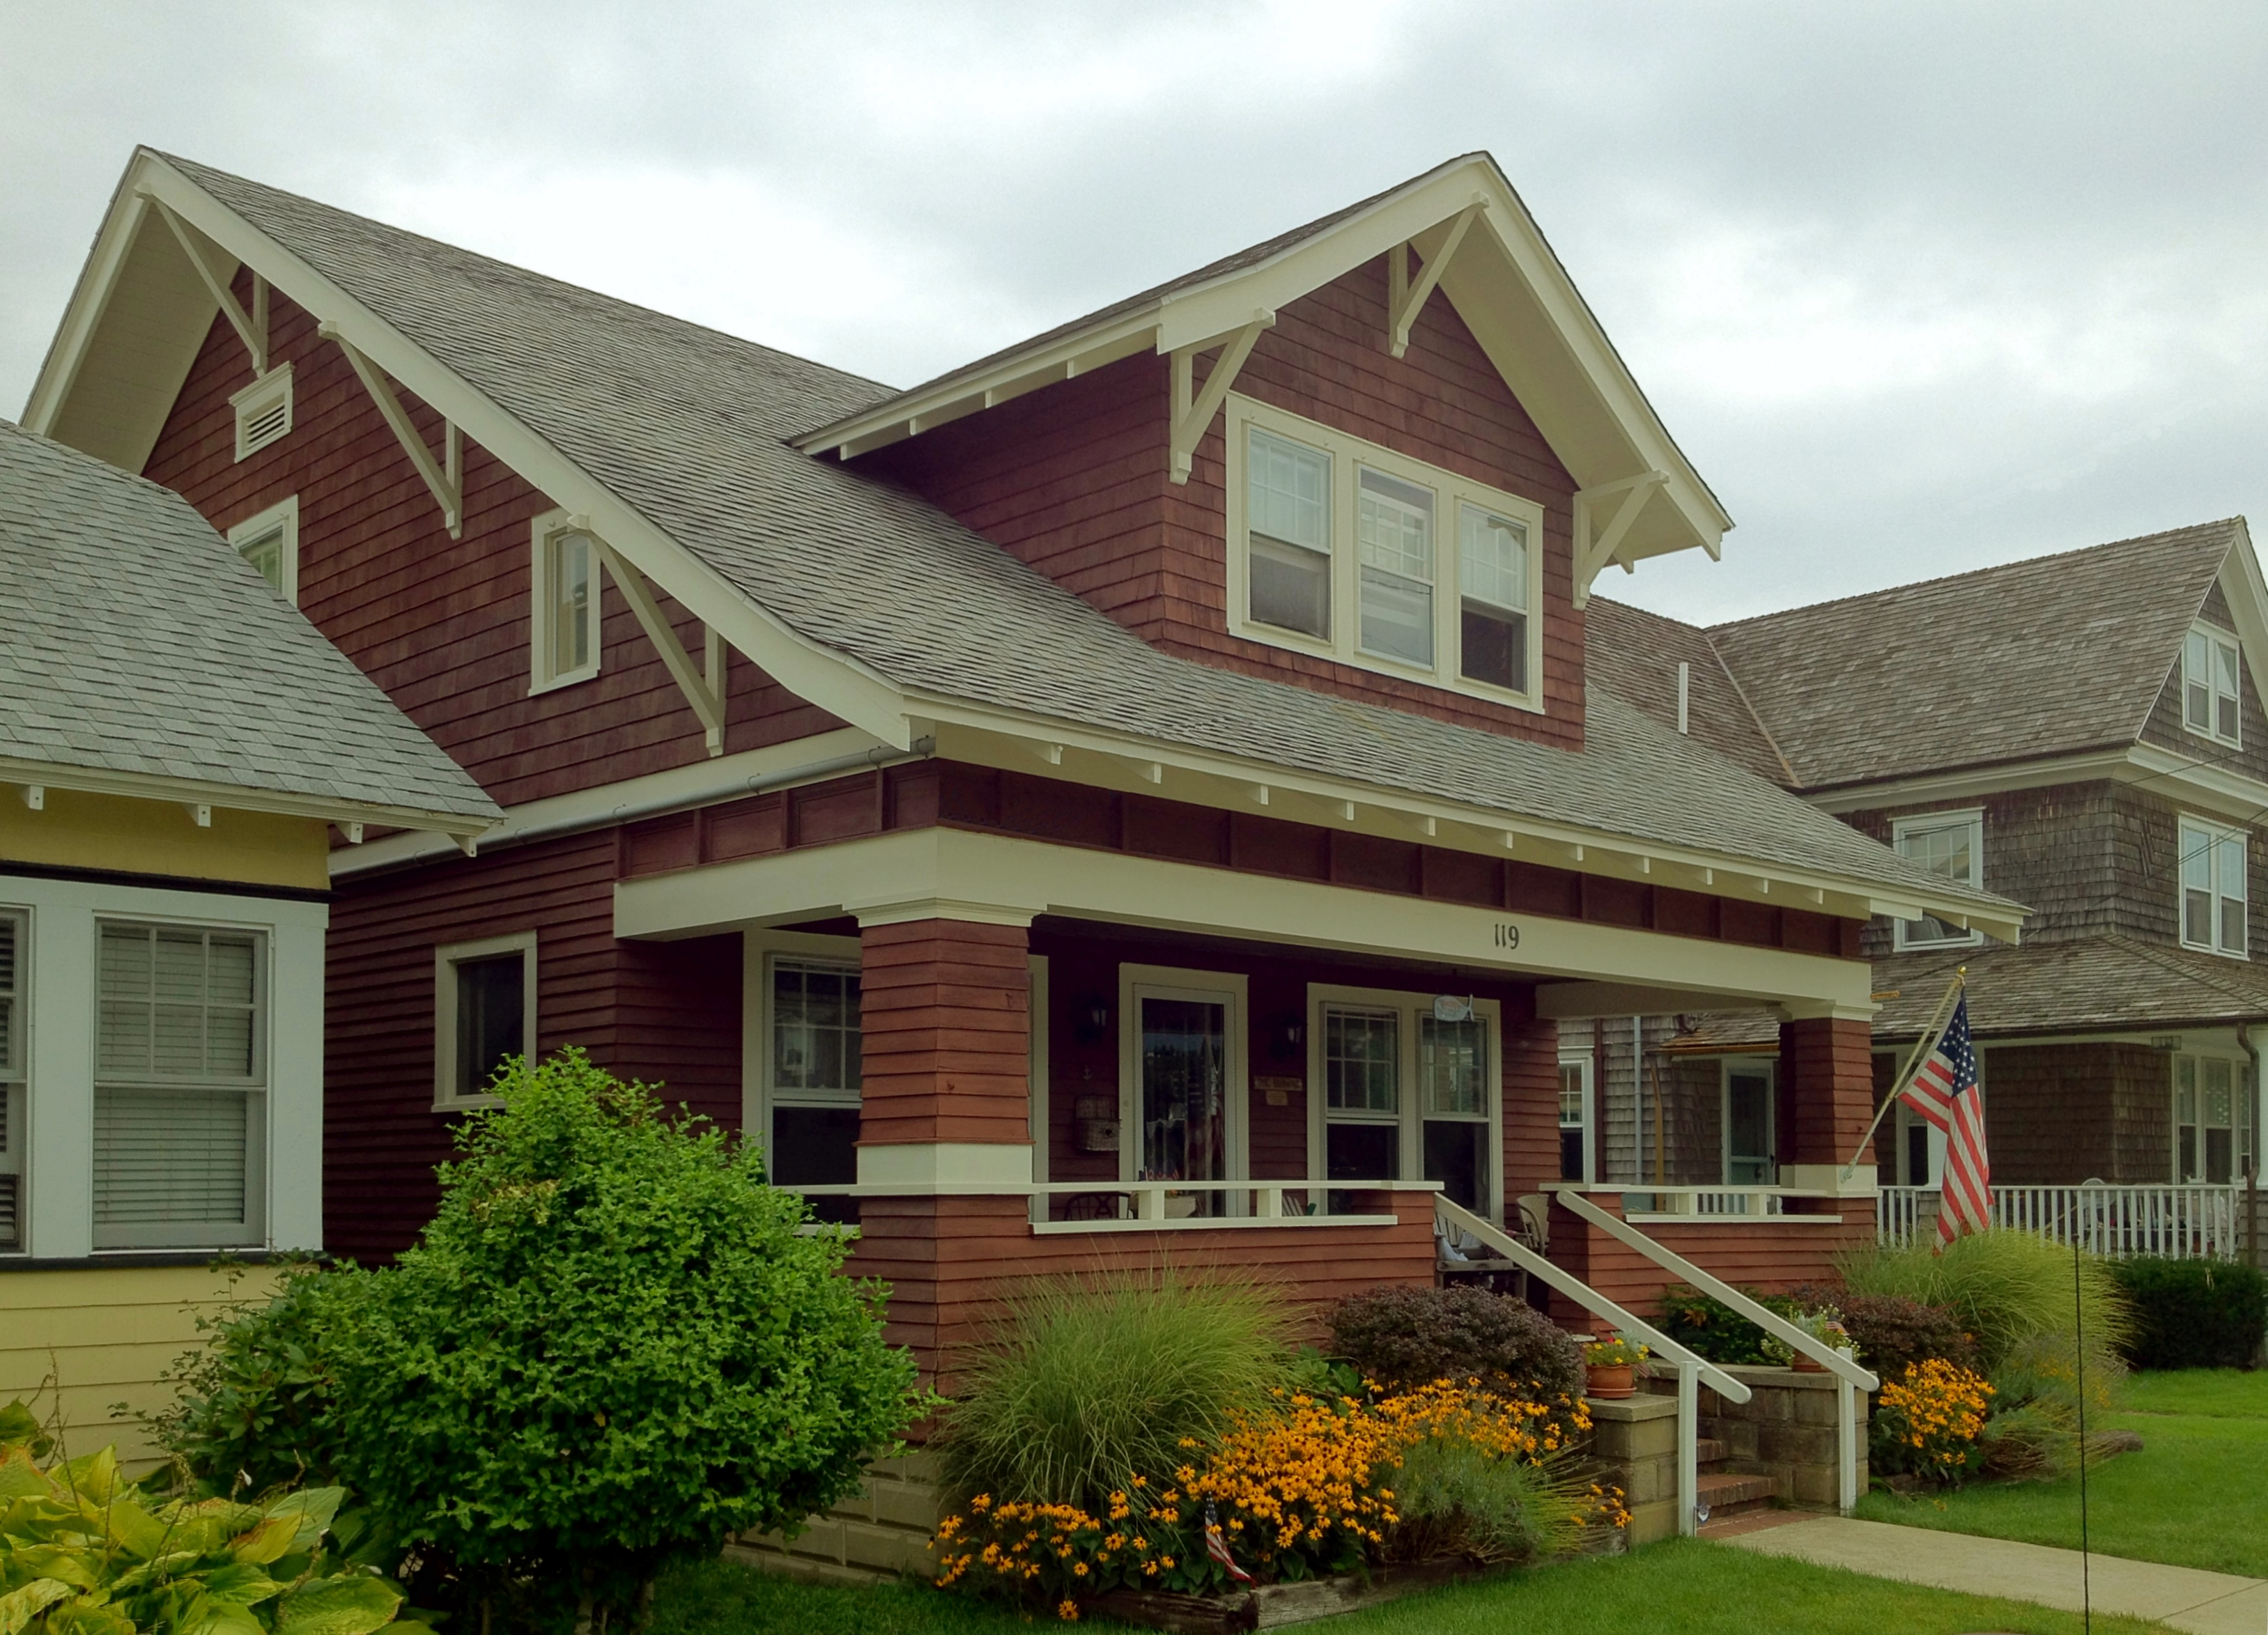 Beach Bungalows And Memories On The Jersey Shore The